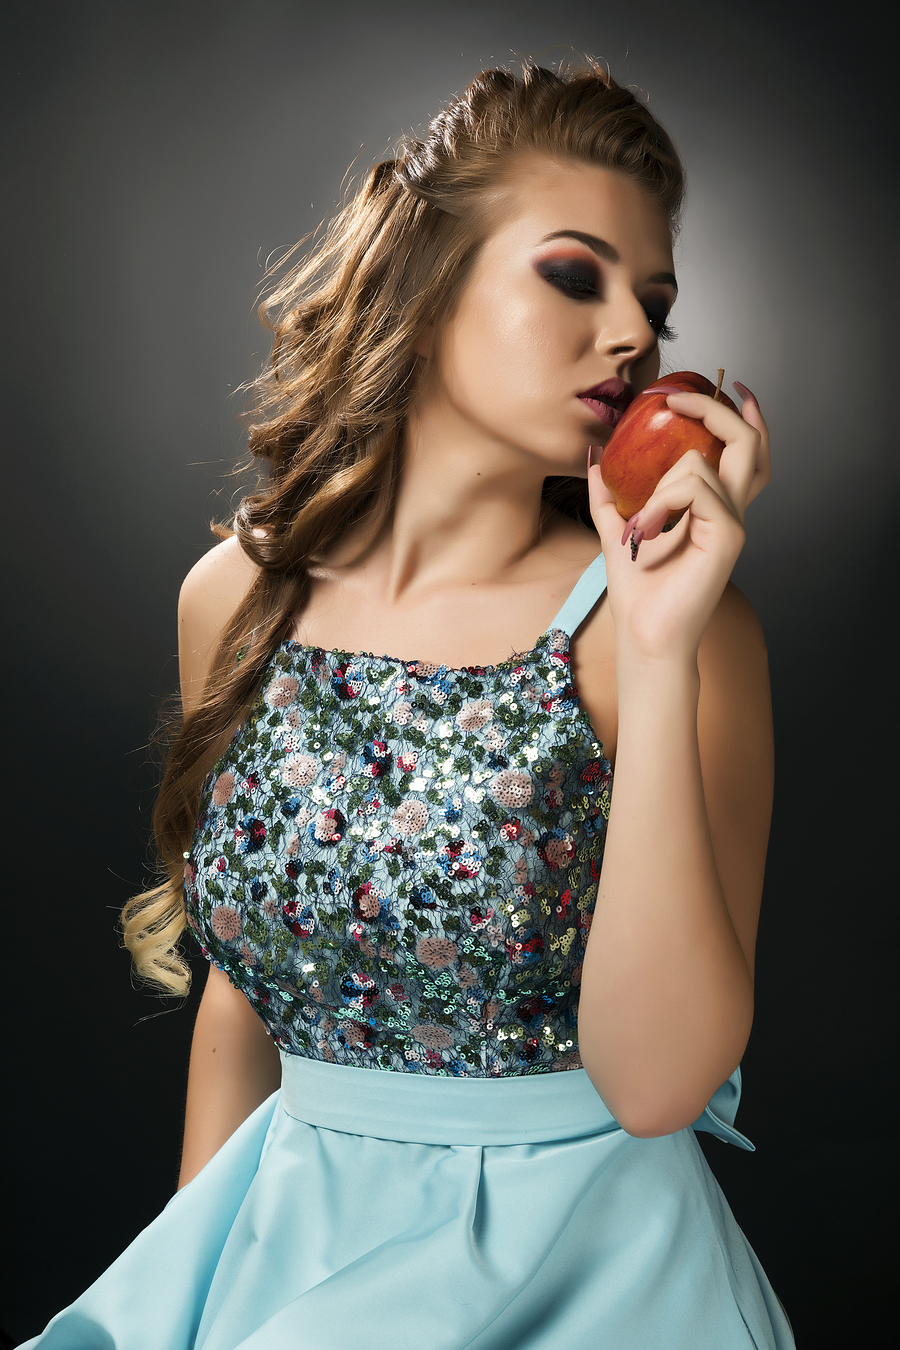 Red Apple / Photography by FotoPopescu, Model Bianca Marina Grigore, Post processing by Purple Princess Edits / Uploaded 7th November 2017 @ 07:08 PM